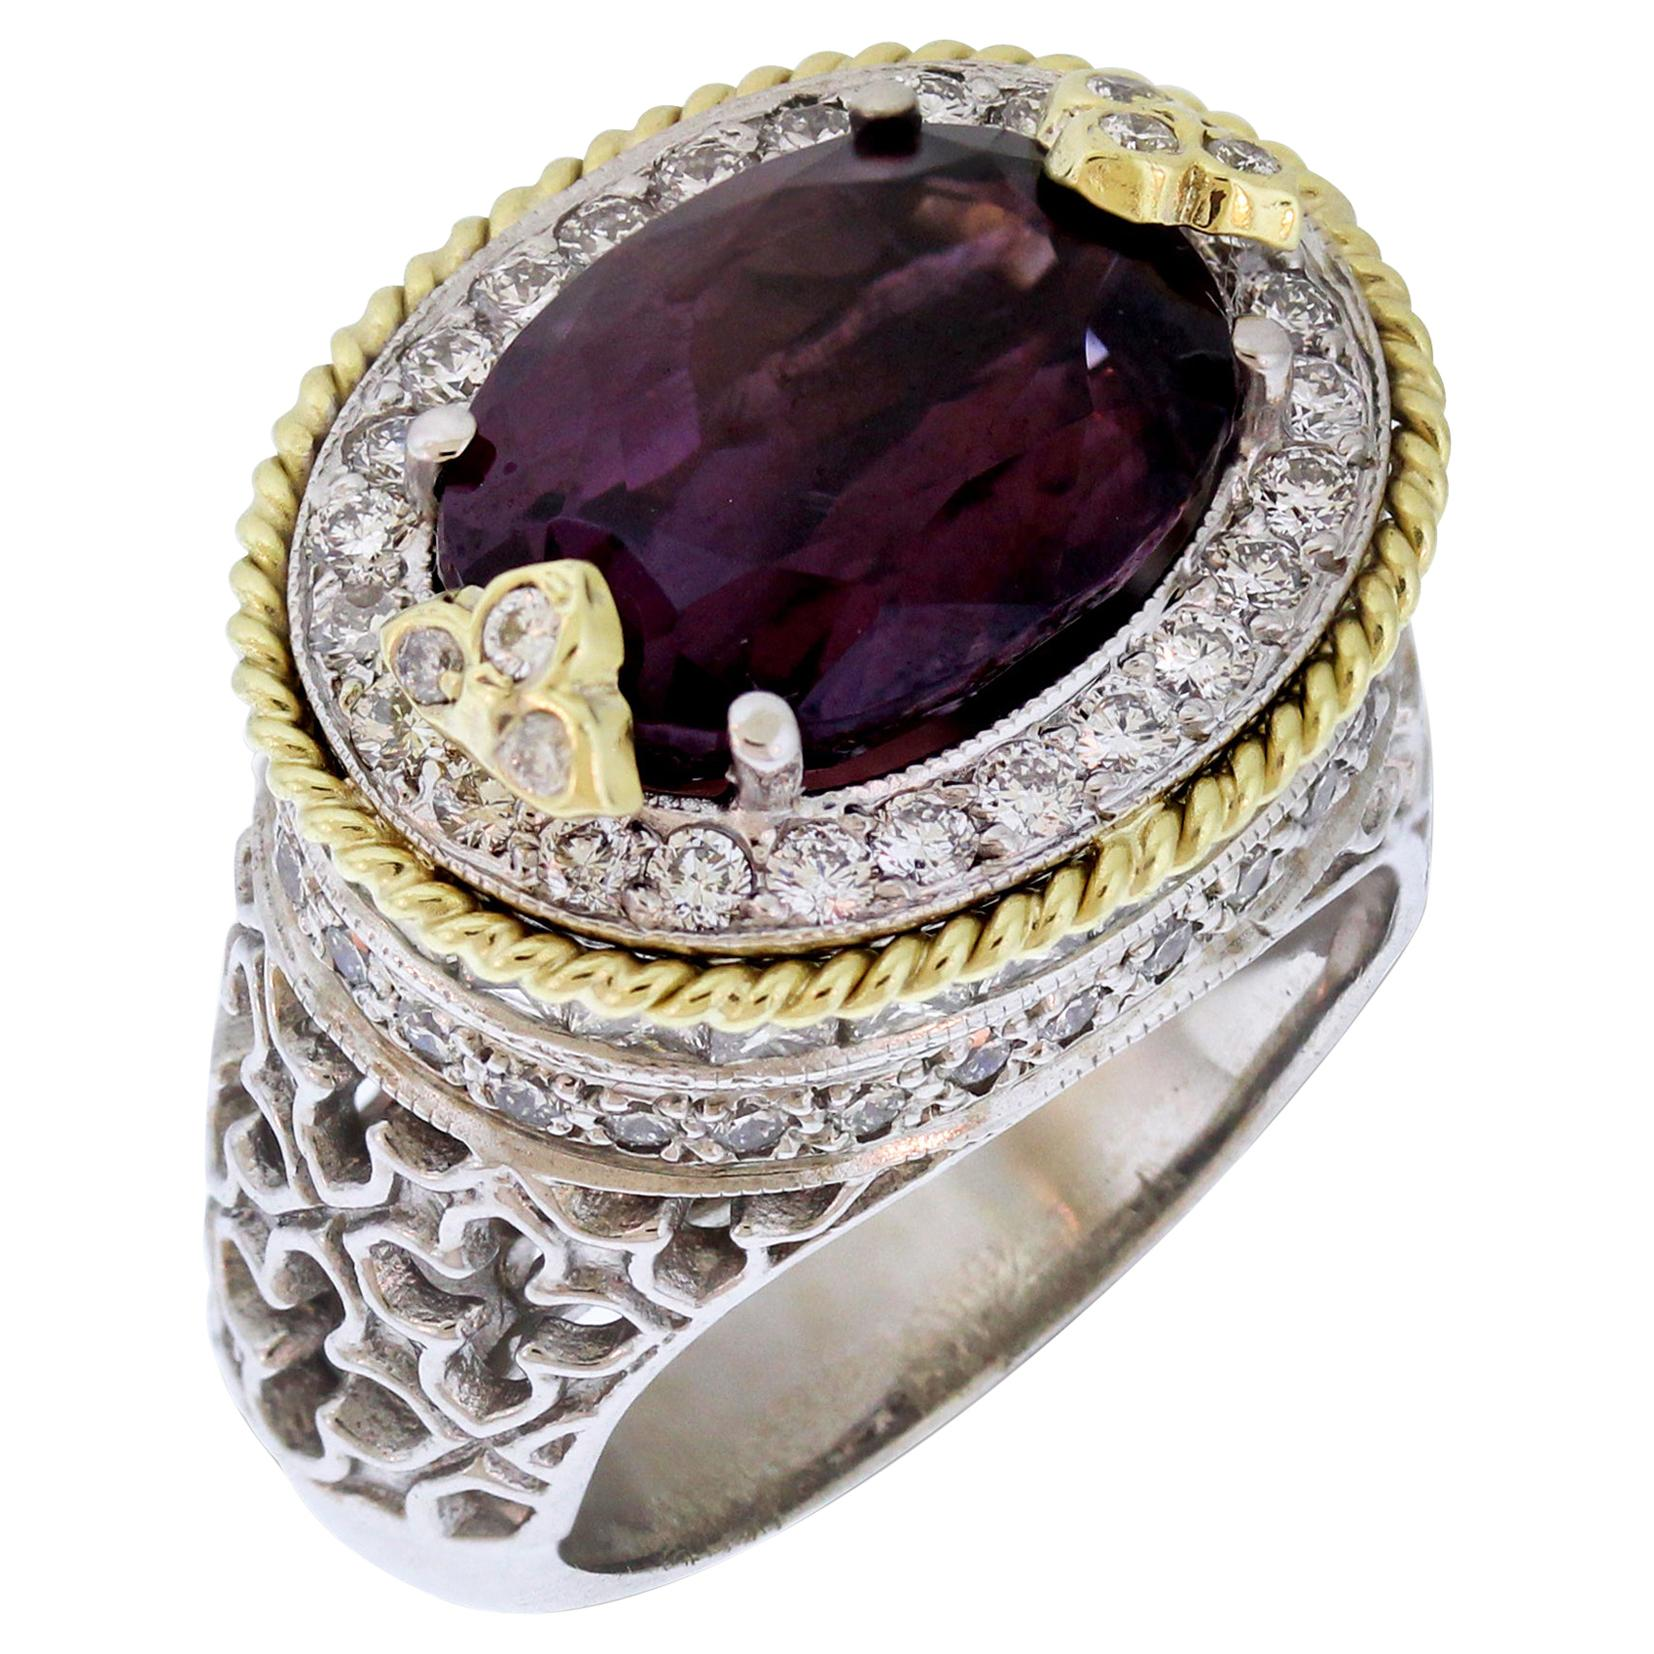 Stambolian Two-Tone Gold and Diamond Ring with Purple Spinel Center